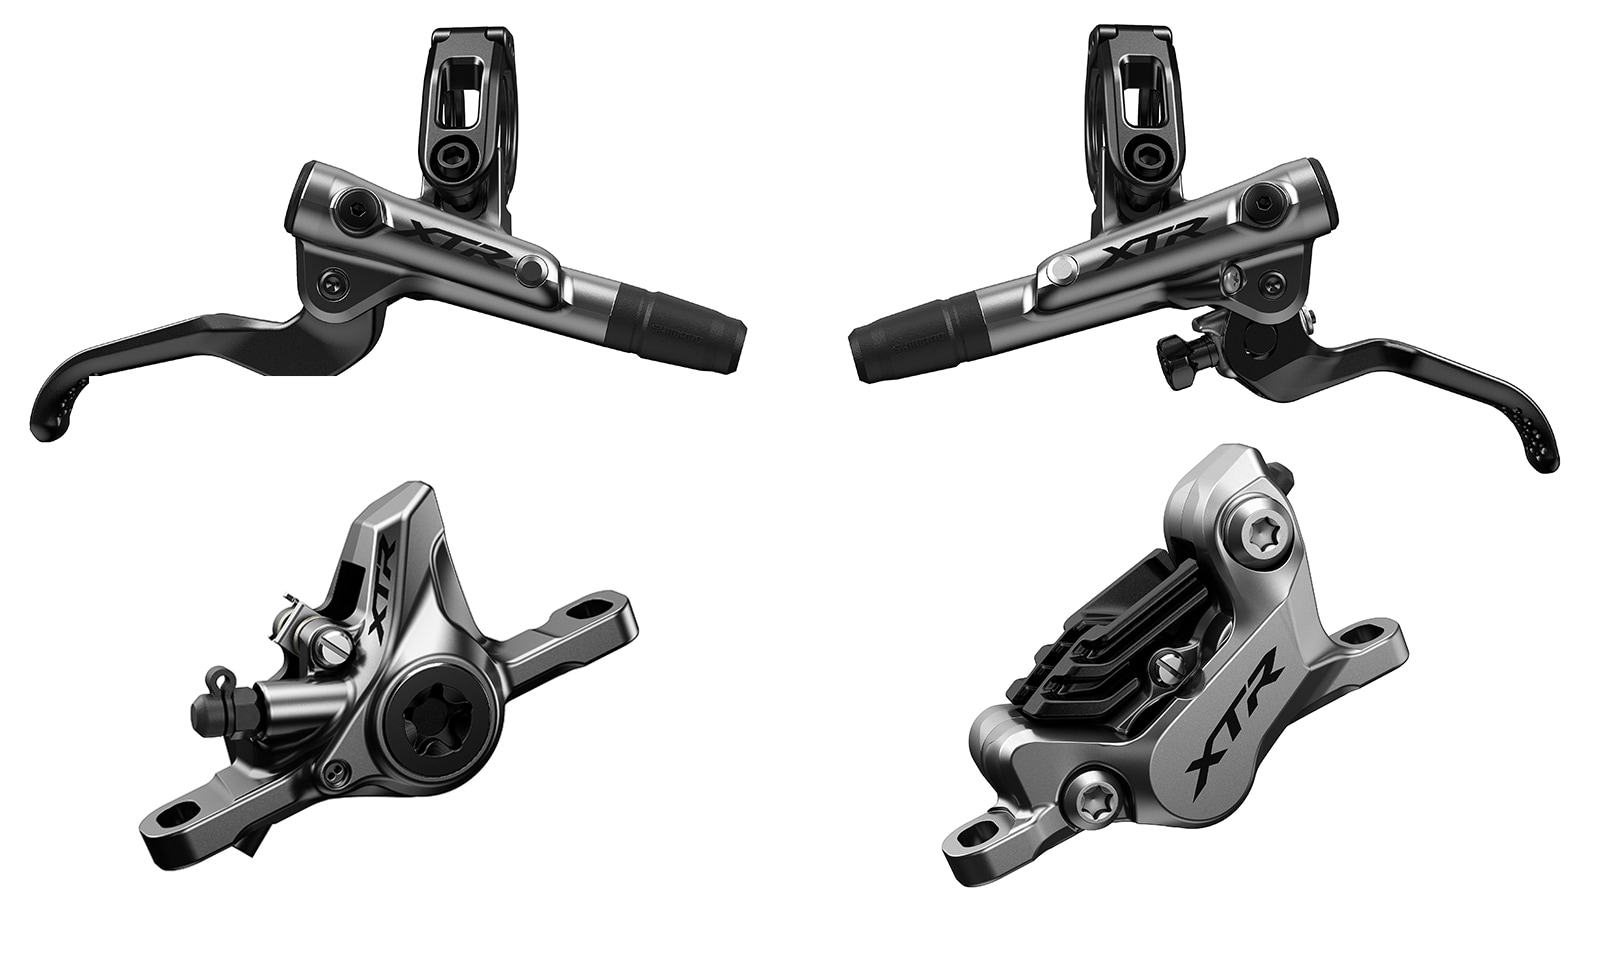 XTR M9100 and M9120 brakes